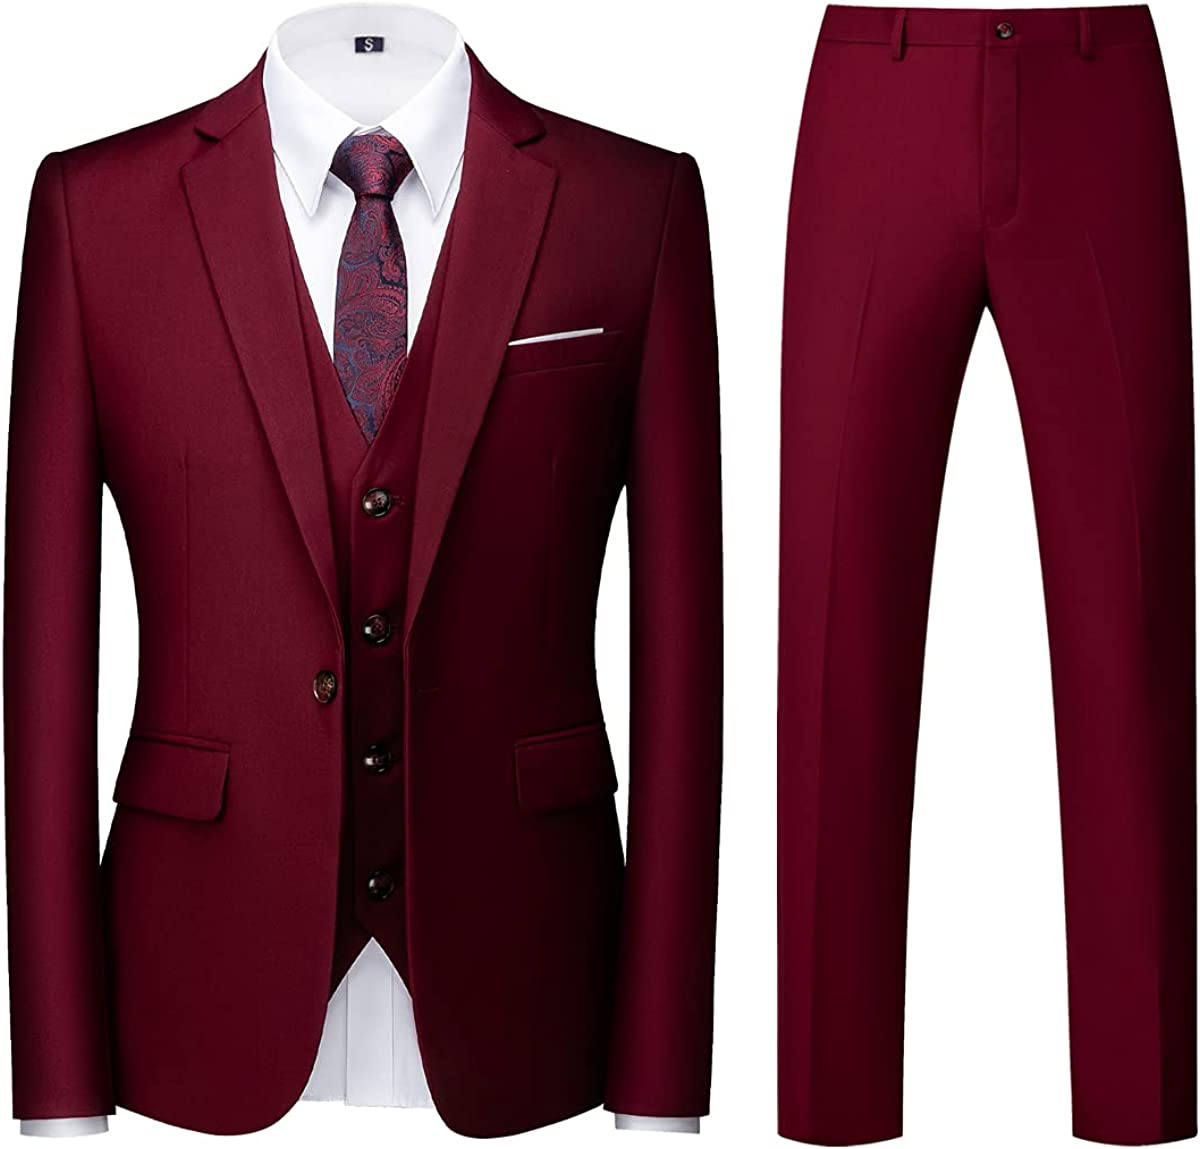 KUDORO Men' s Suits Regular Fit Tuxedo 3 Piece Jacket Vest Pants Set for Men Wedding Prom Casual Solid Color Single Breasted